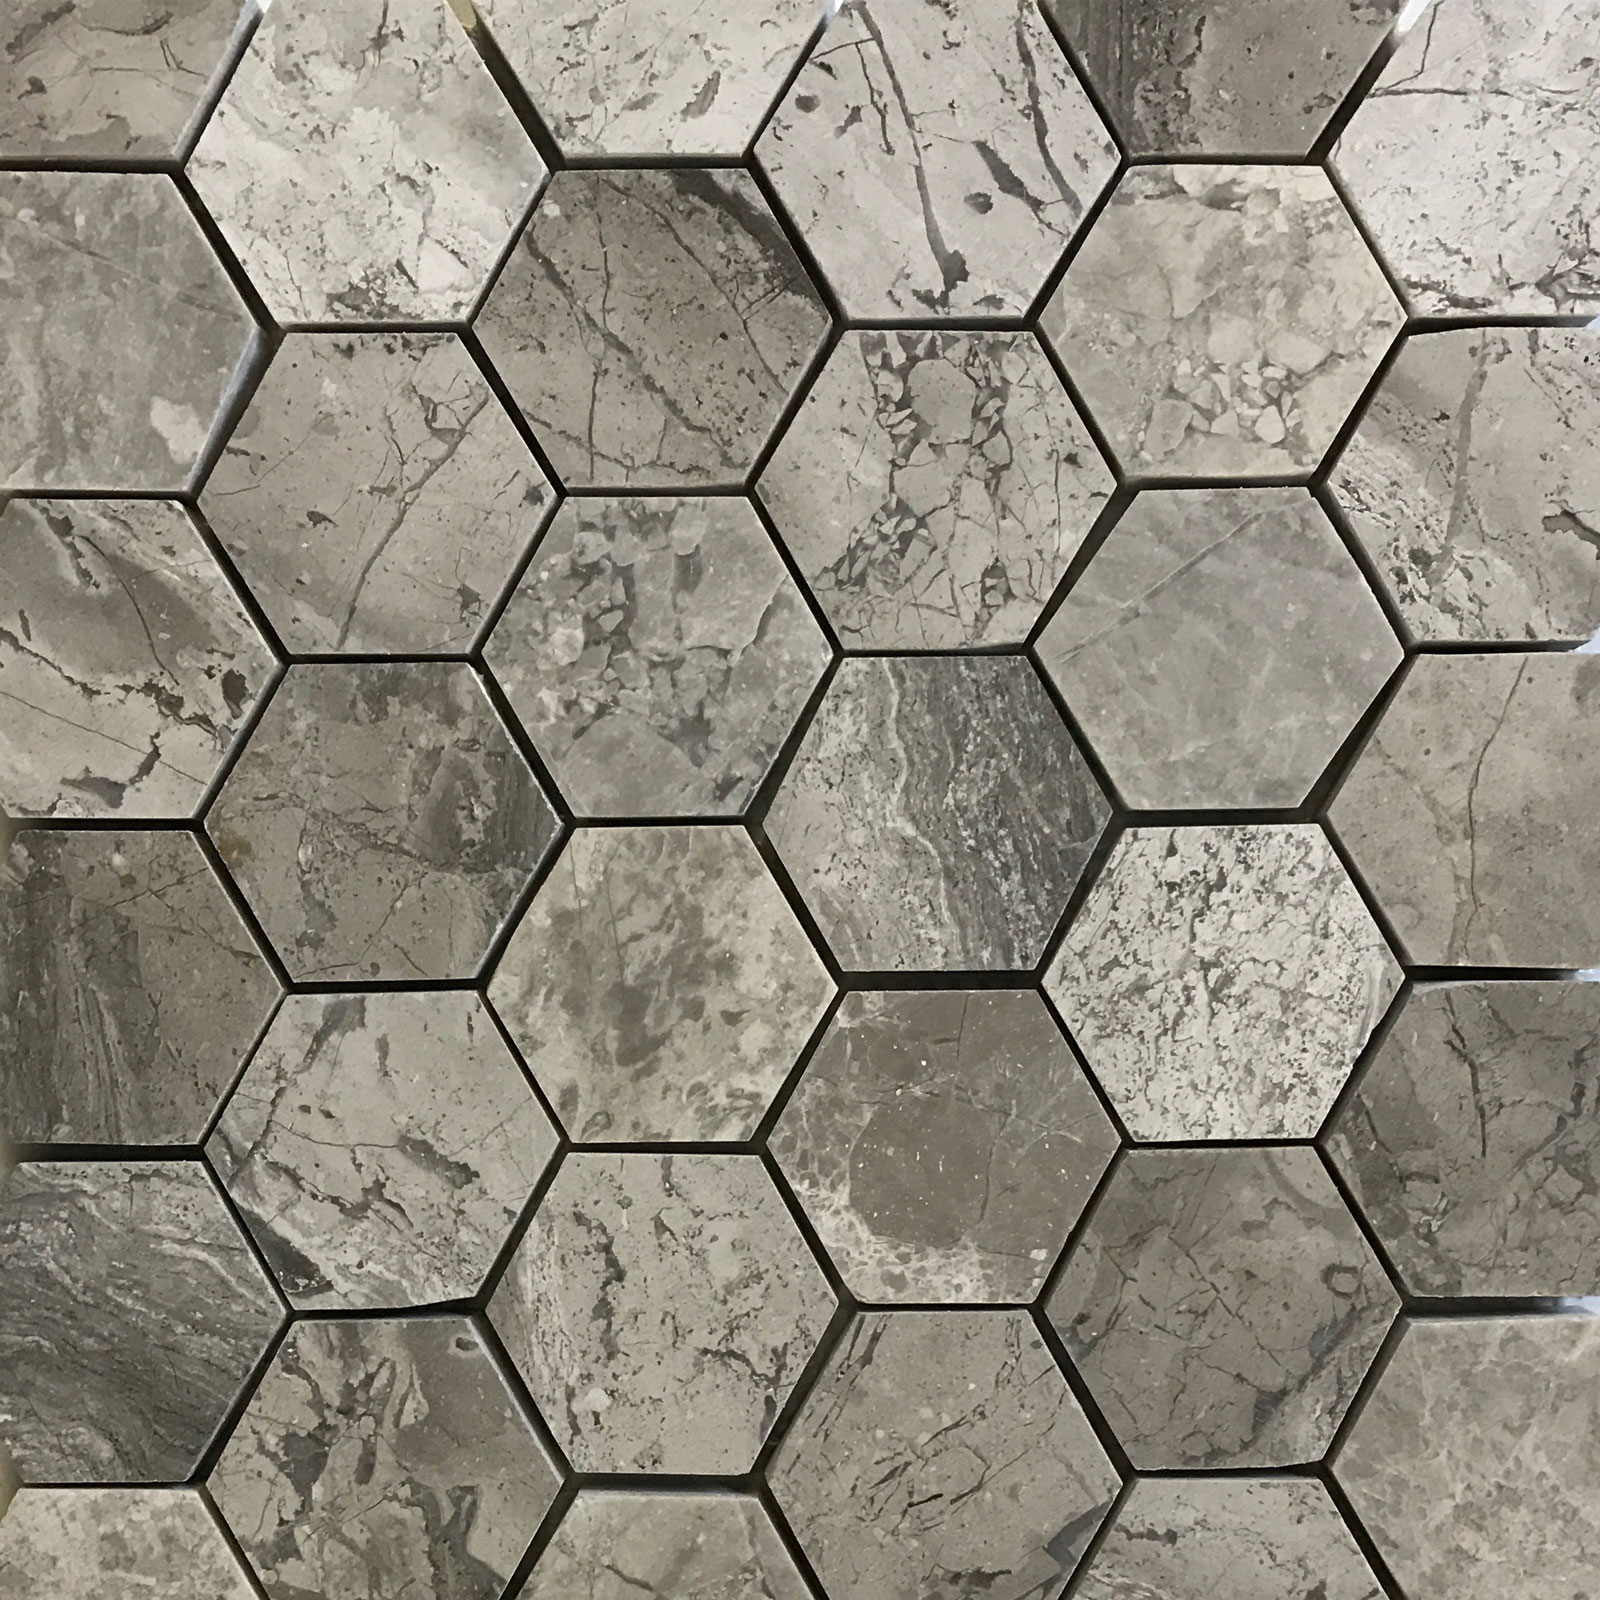 2 Inch Hexagon Mosaic Tile Shades Of Grey Marble Polished Sogh32